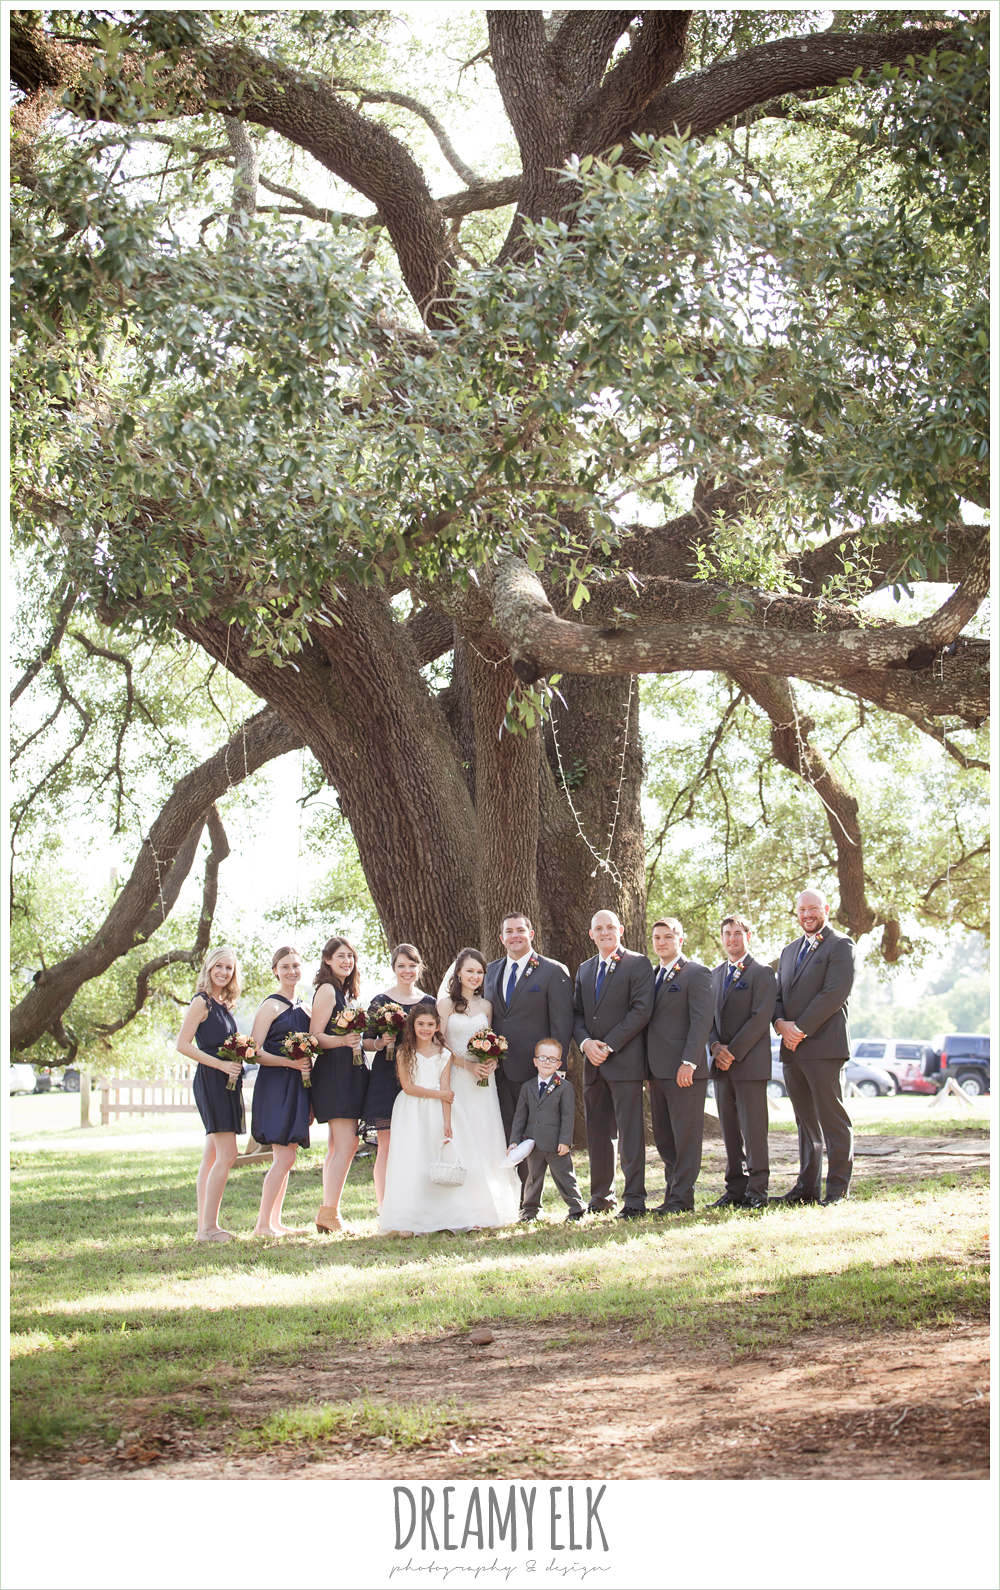 bridal party photo under an oak tree, strapless lace wedding dress with belt, gray suit and navy tie, pine lake ranch, rustic wedding photo {dreamy elk photography and design}